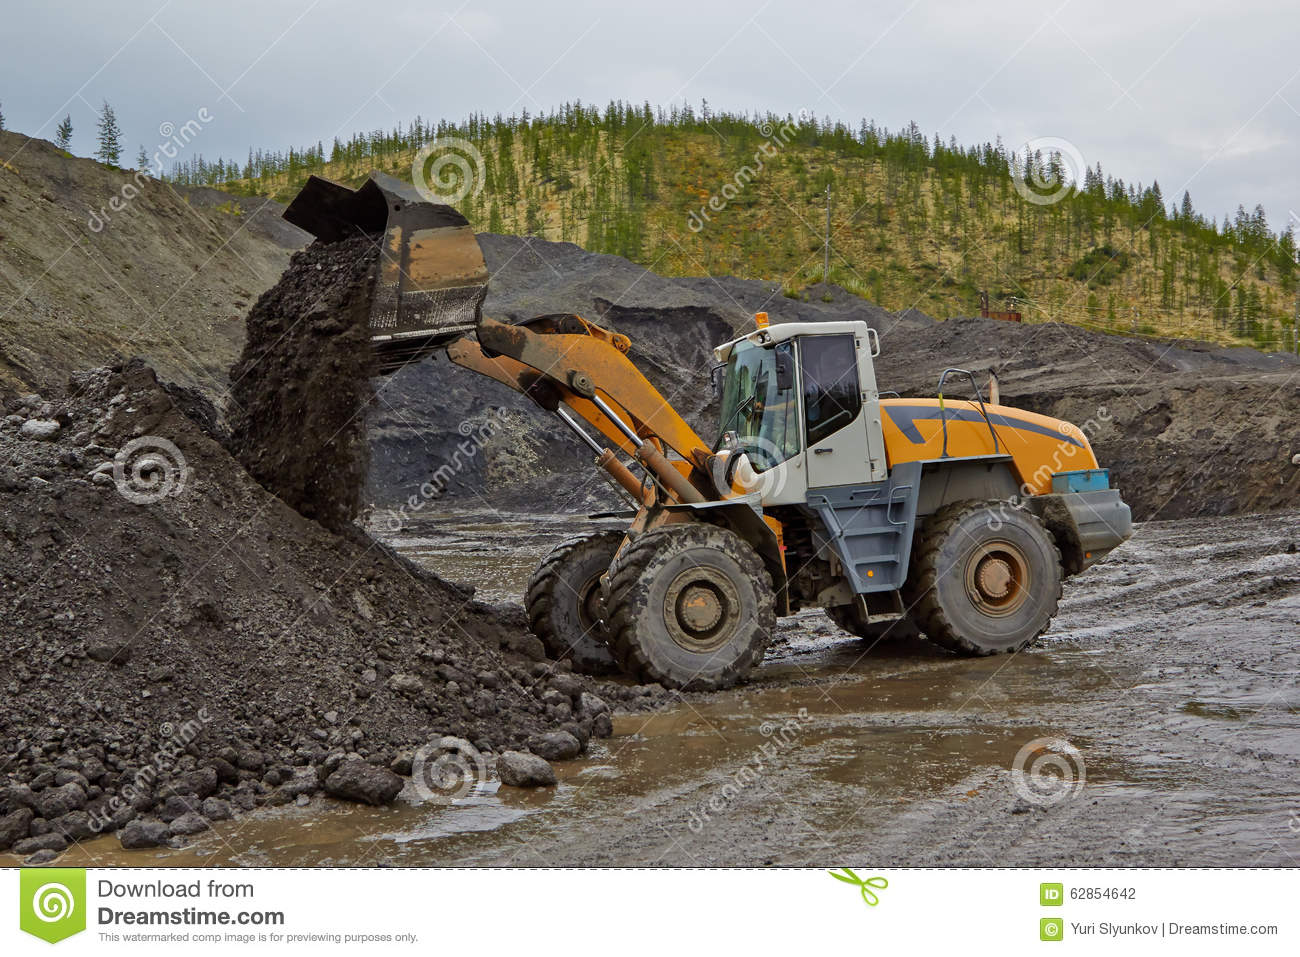 Gold mining in Susuman. The auto-loader works